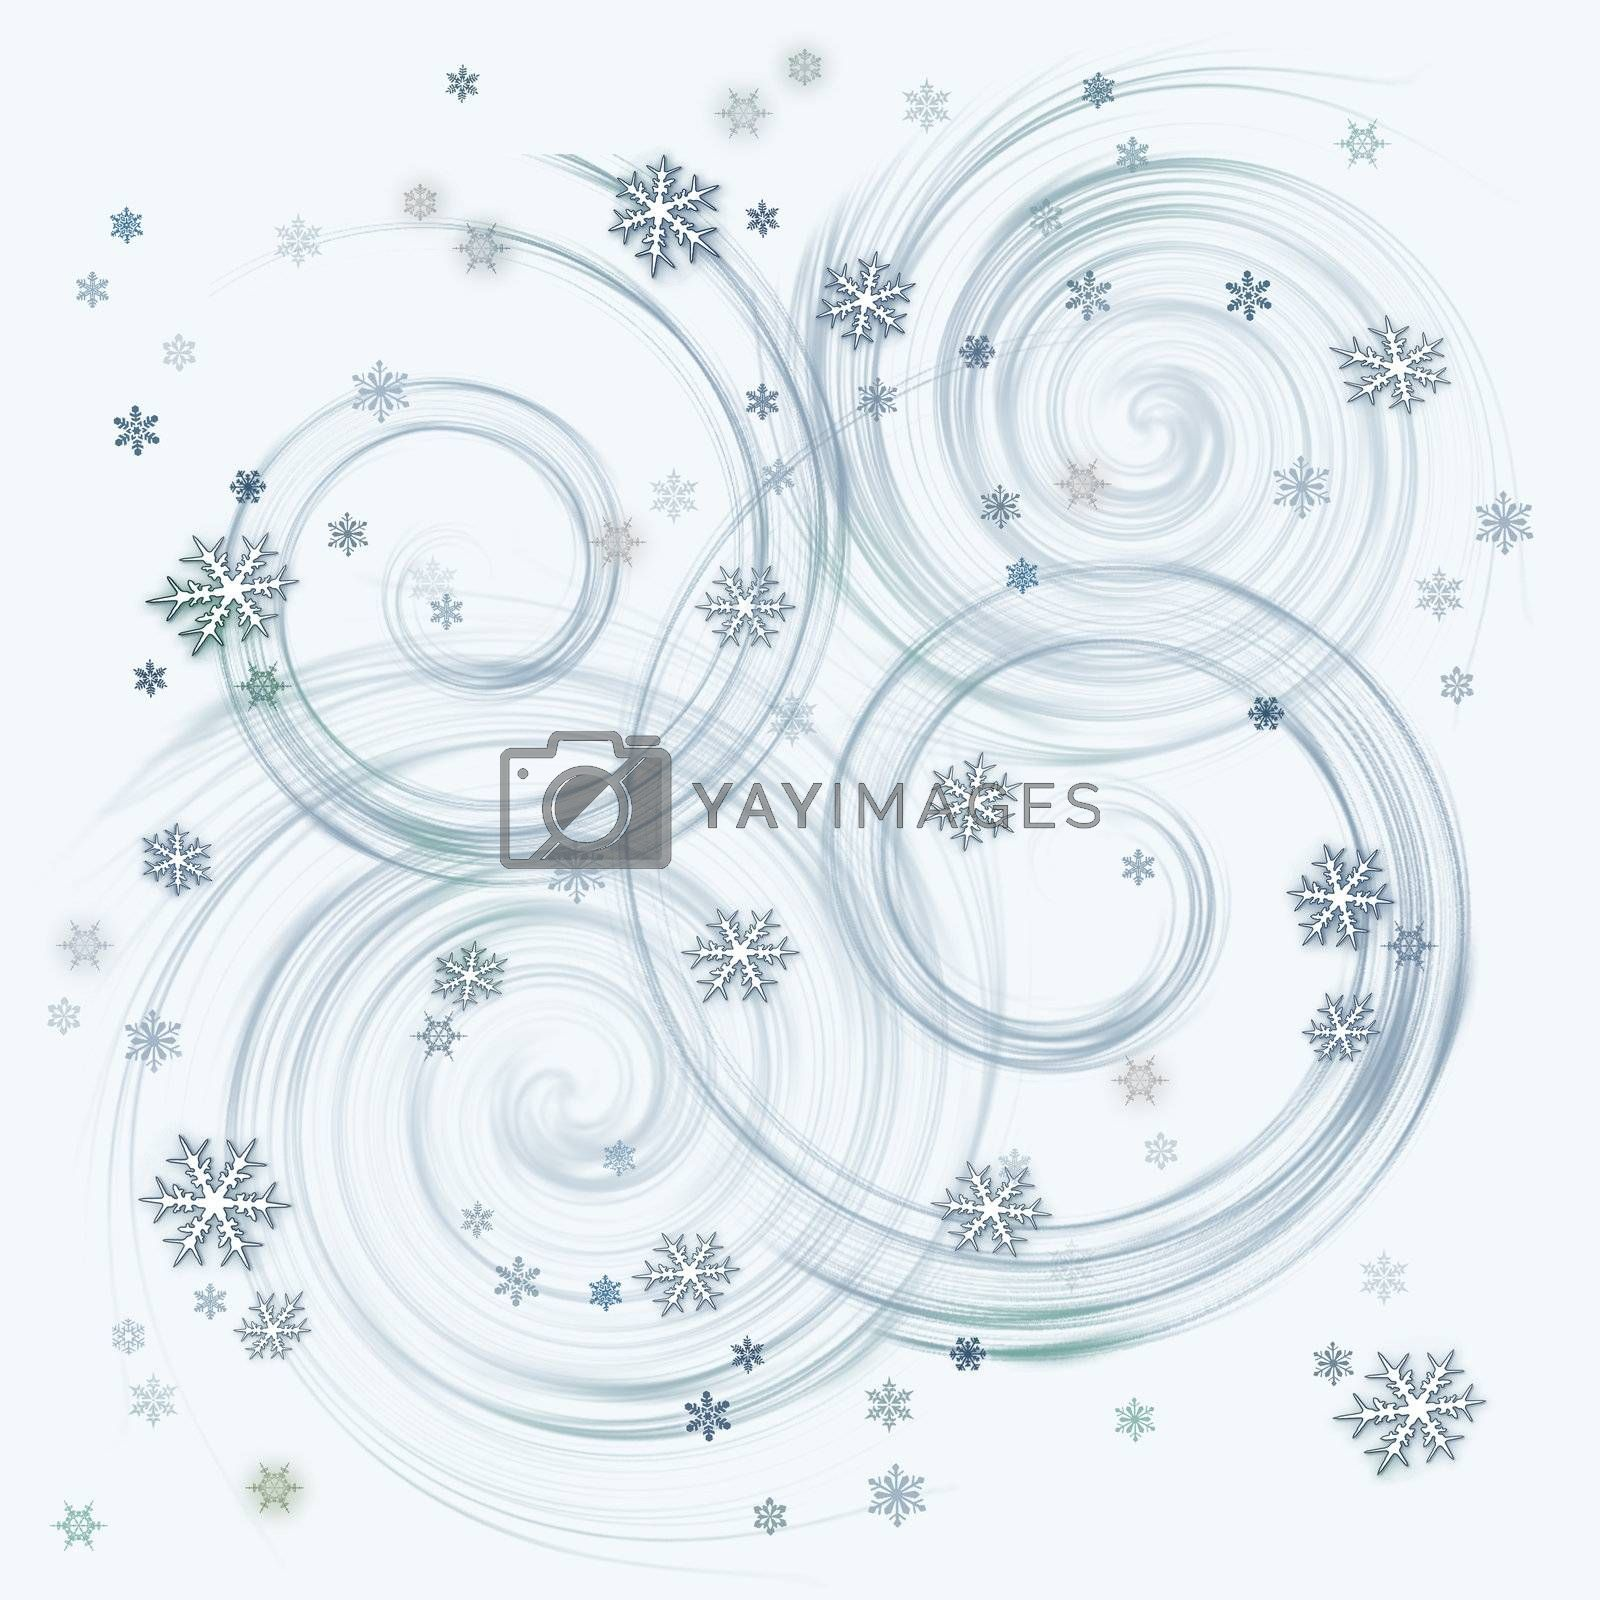 Abstract with white snow flakes against blue background